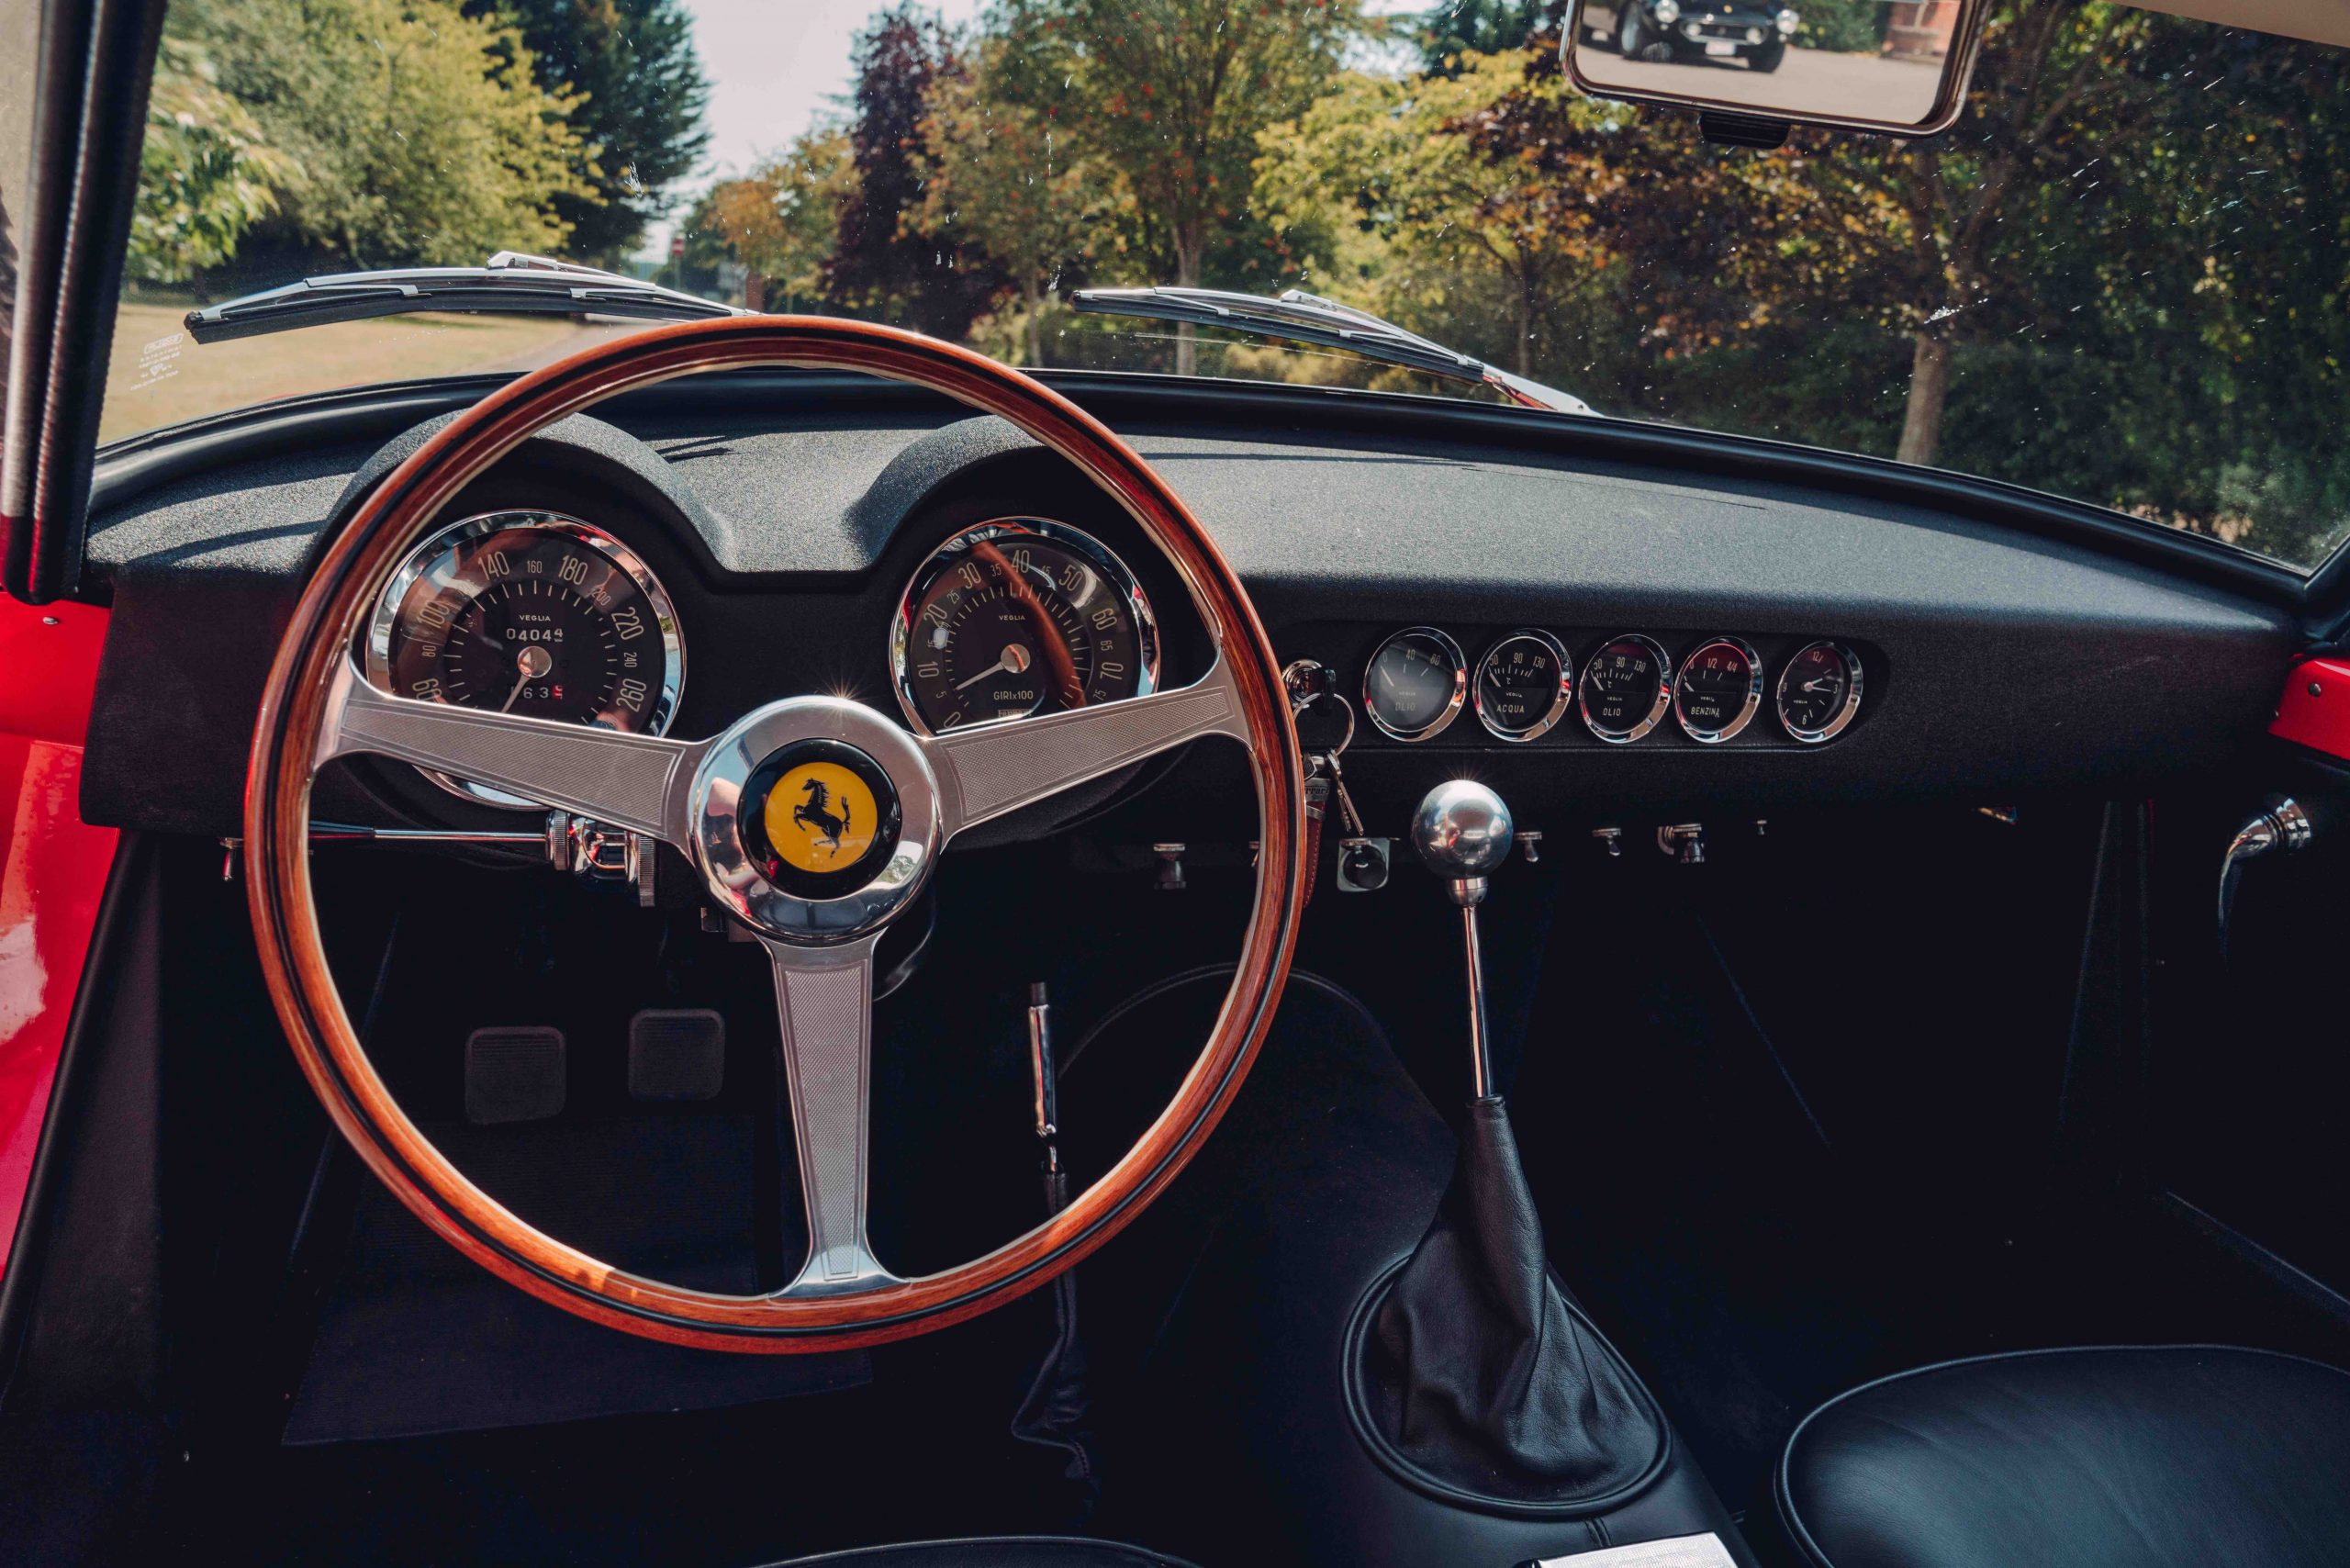 Ferrari 250 GT SWB recreation front interior